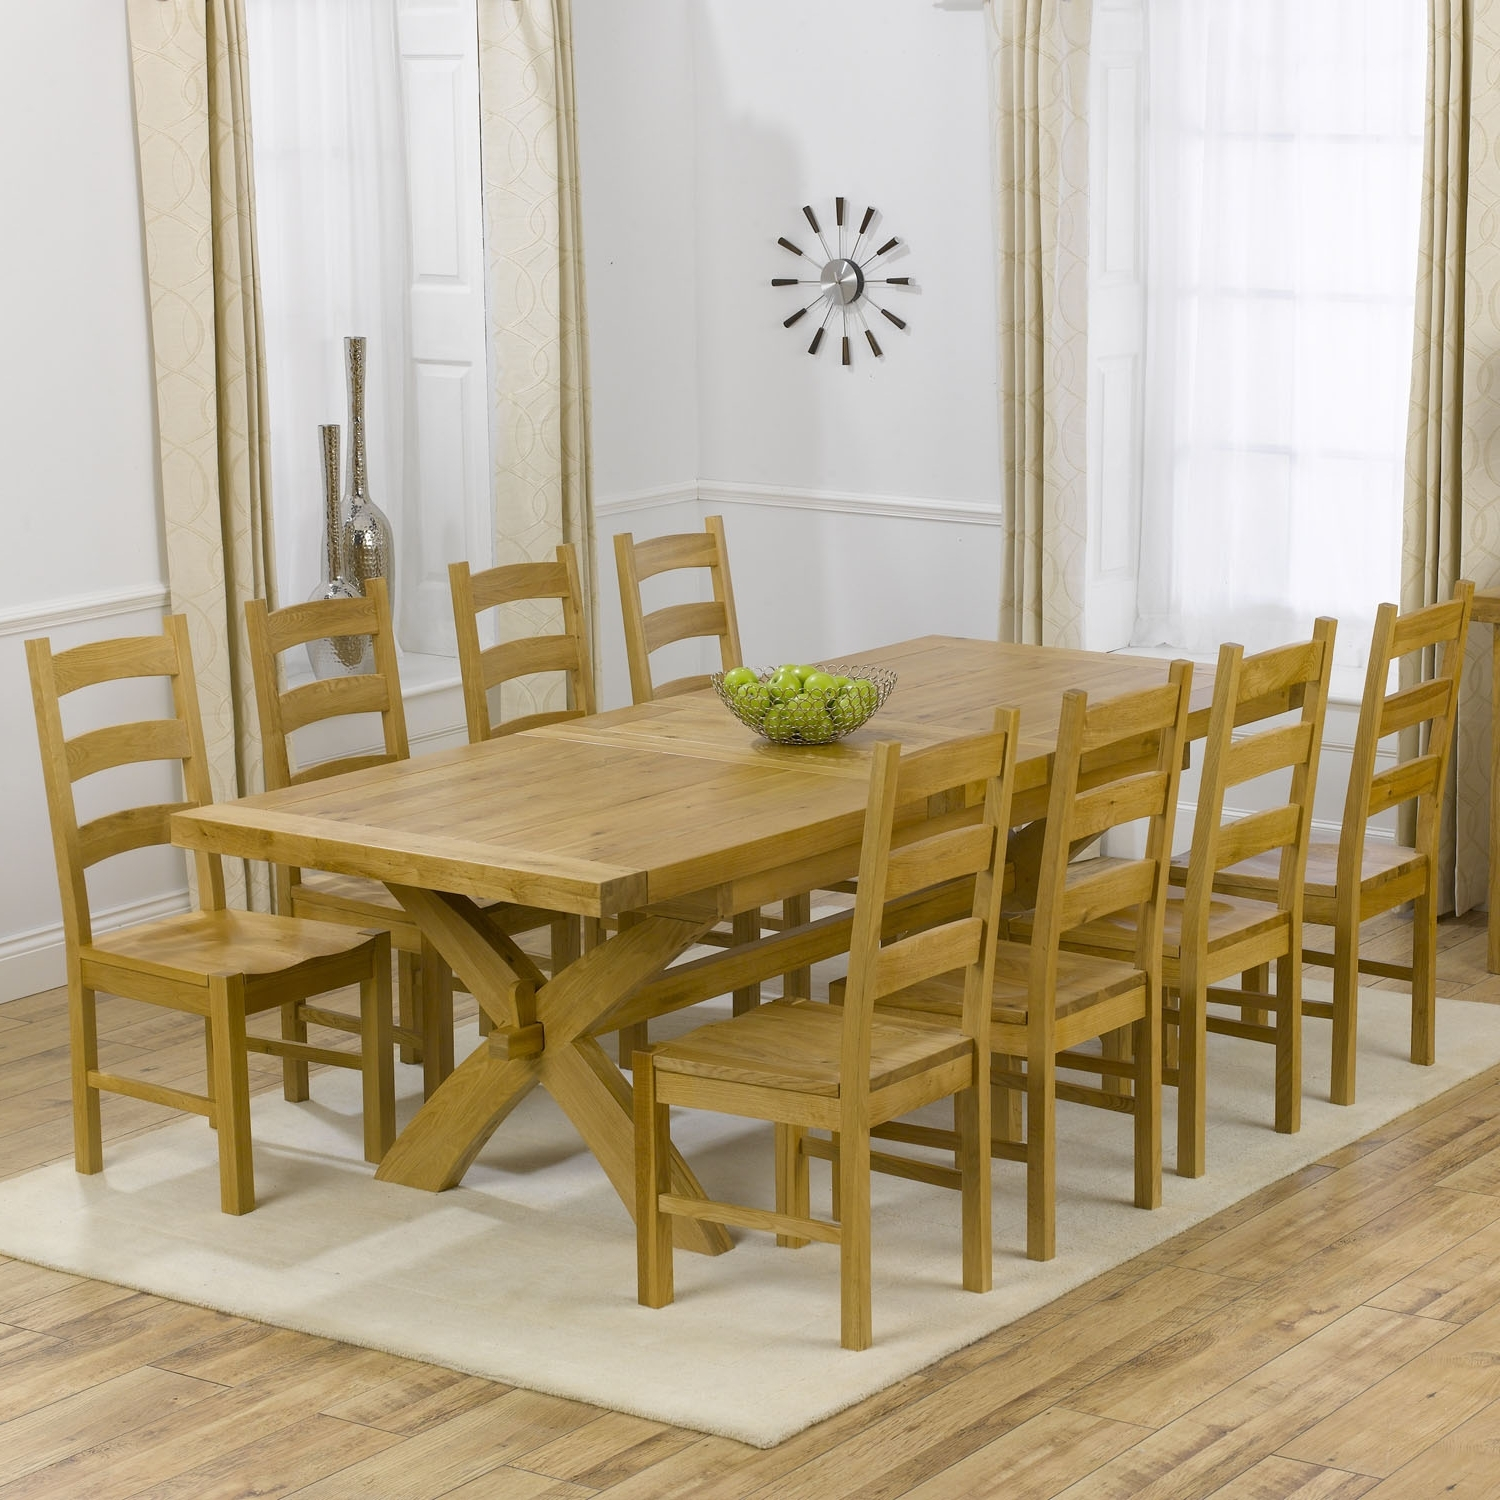 8 Seat Dining Tables For Latest Dining Tables. Marvellous 8 Seater Dining Table Set: 8 Seater Dining (Gallery 25 of 25)